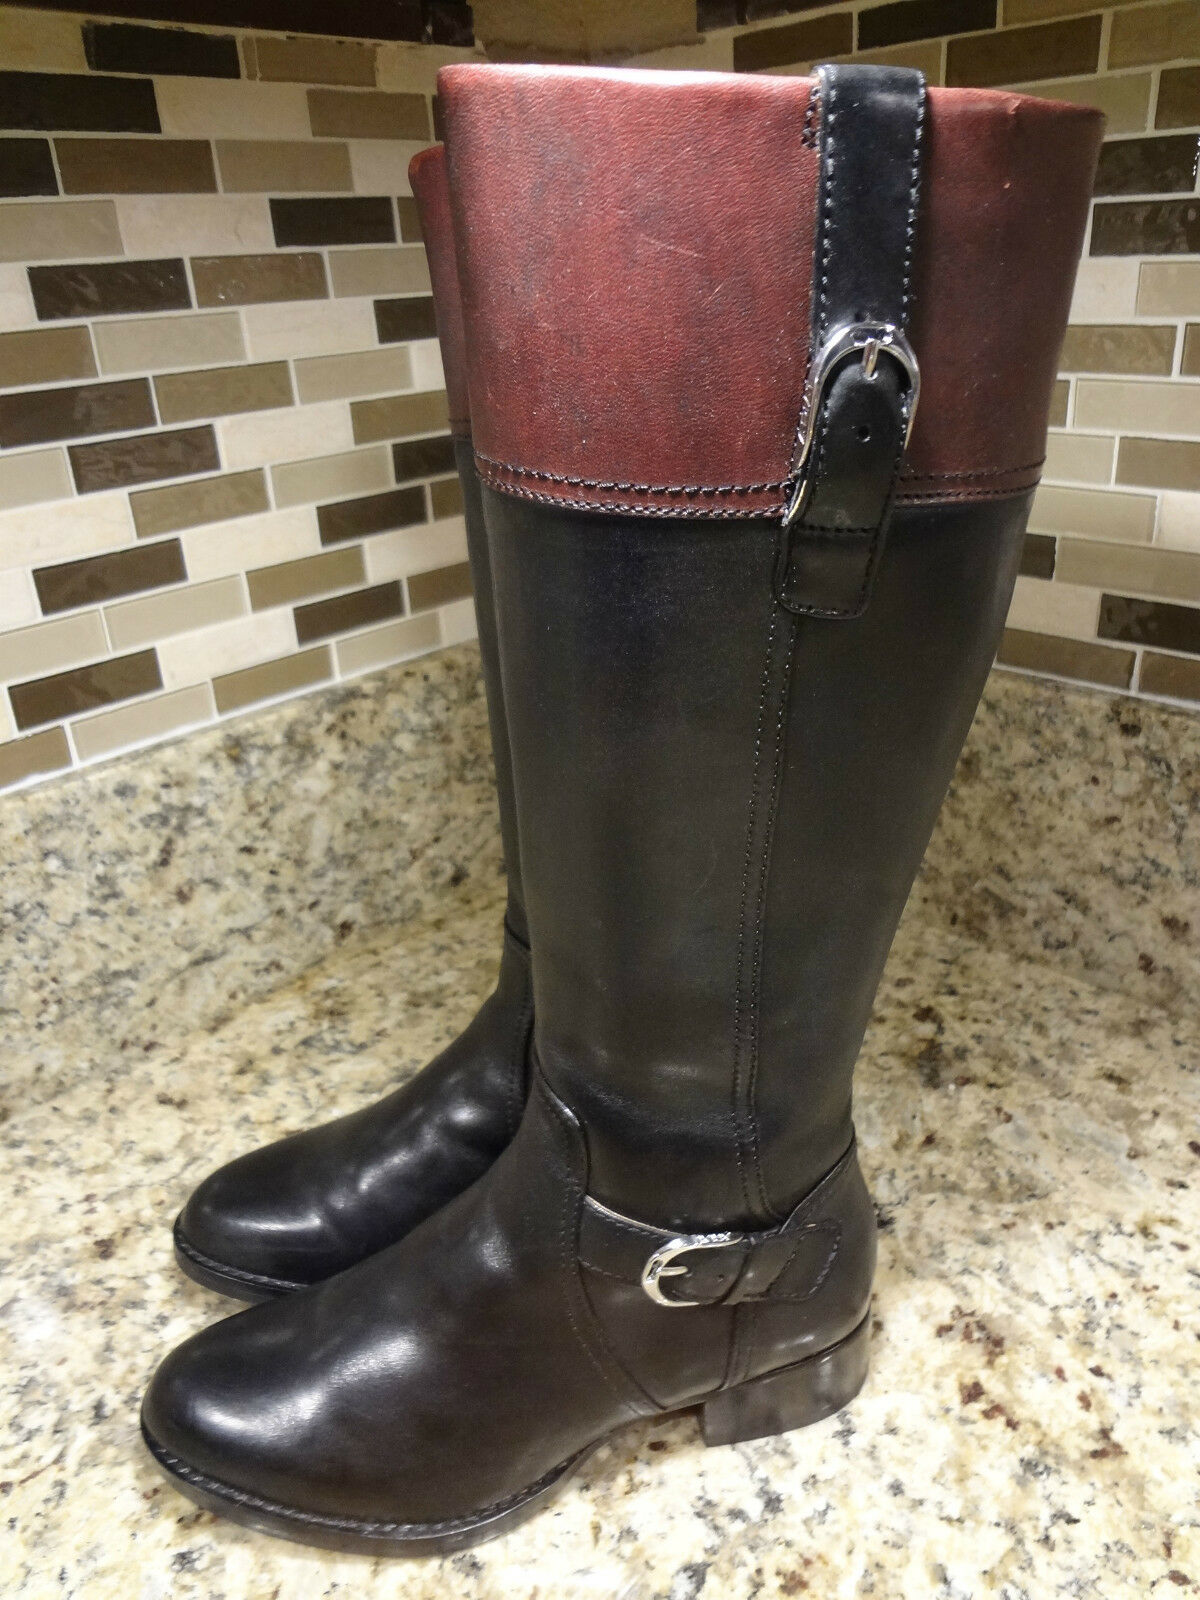 ARIAT WOMEN BOOTS 5.5 B EQUESTRIAN MOTORCYCLE RIDING BLACK LEATHER MINT